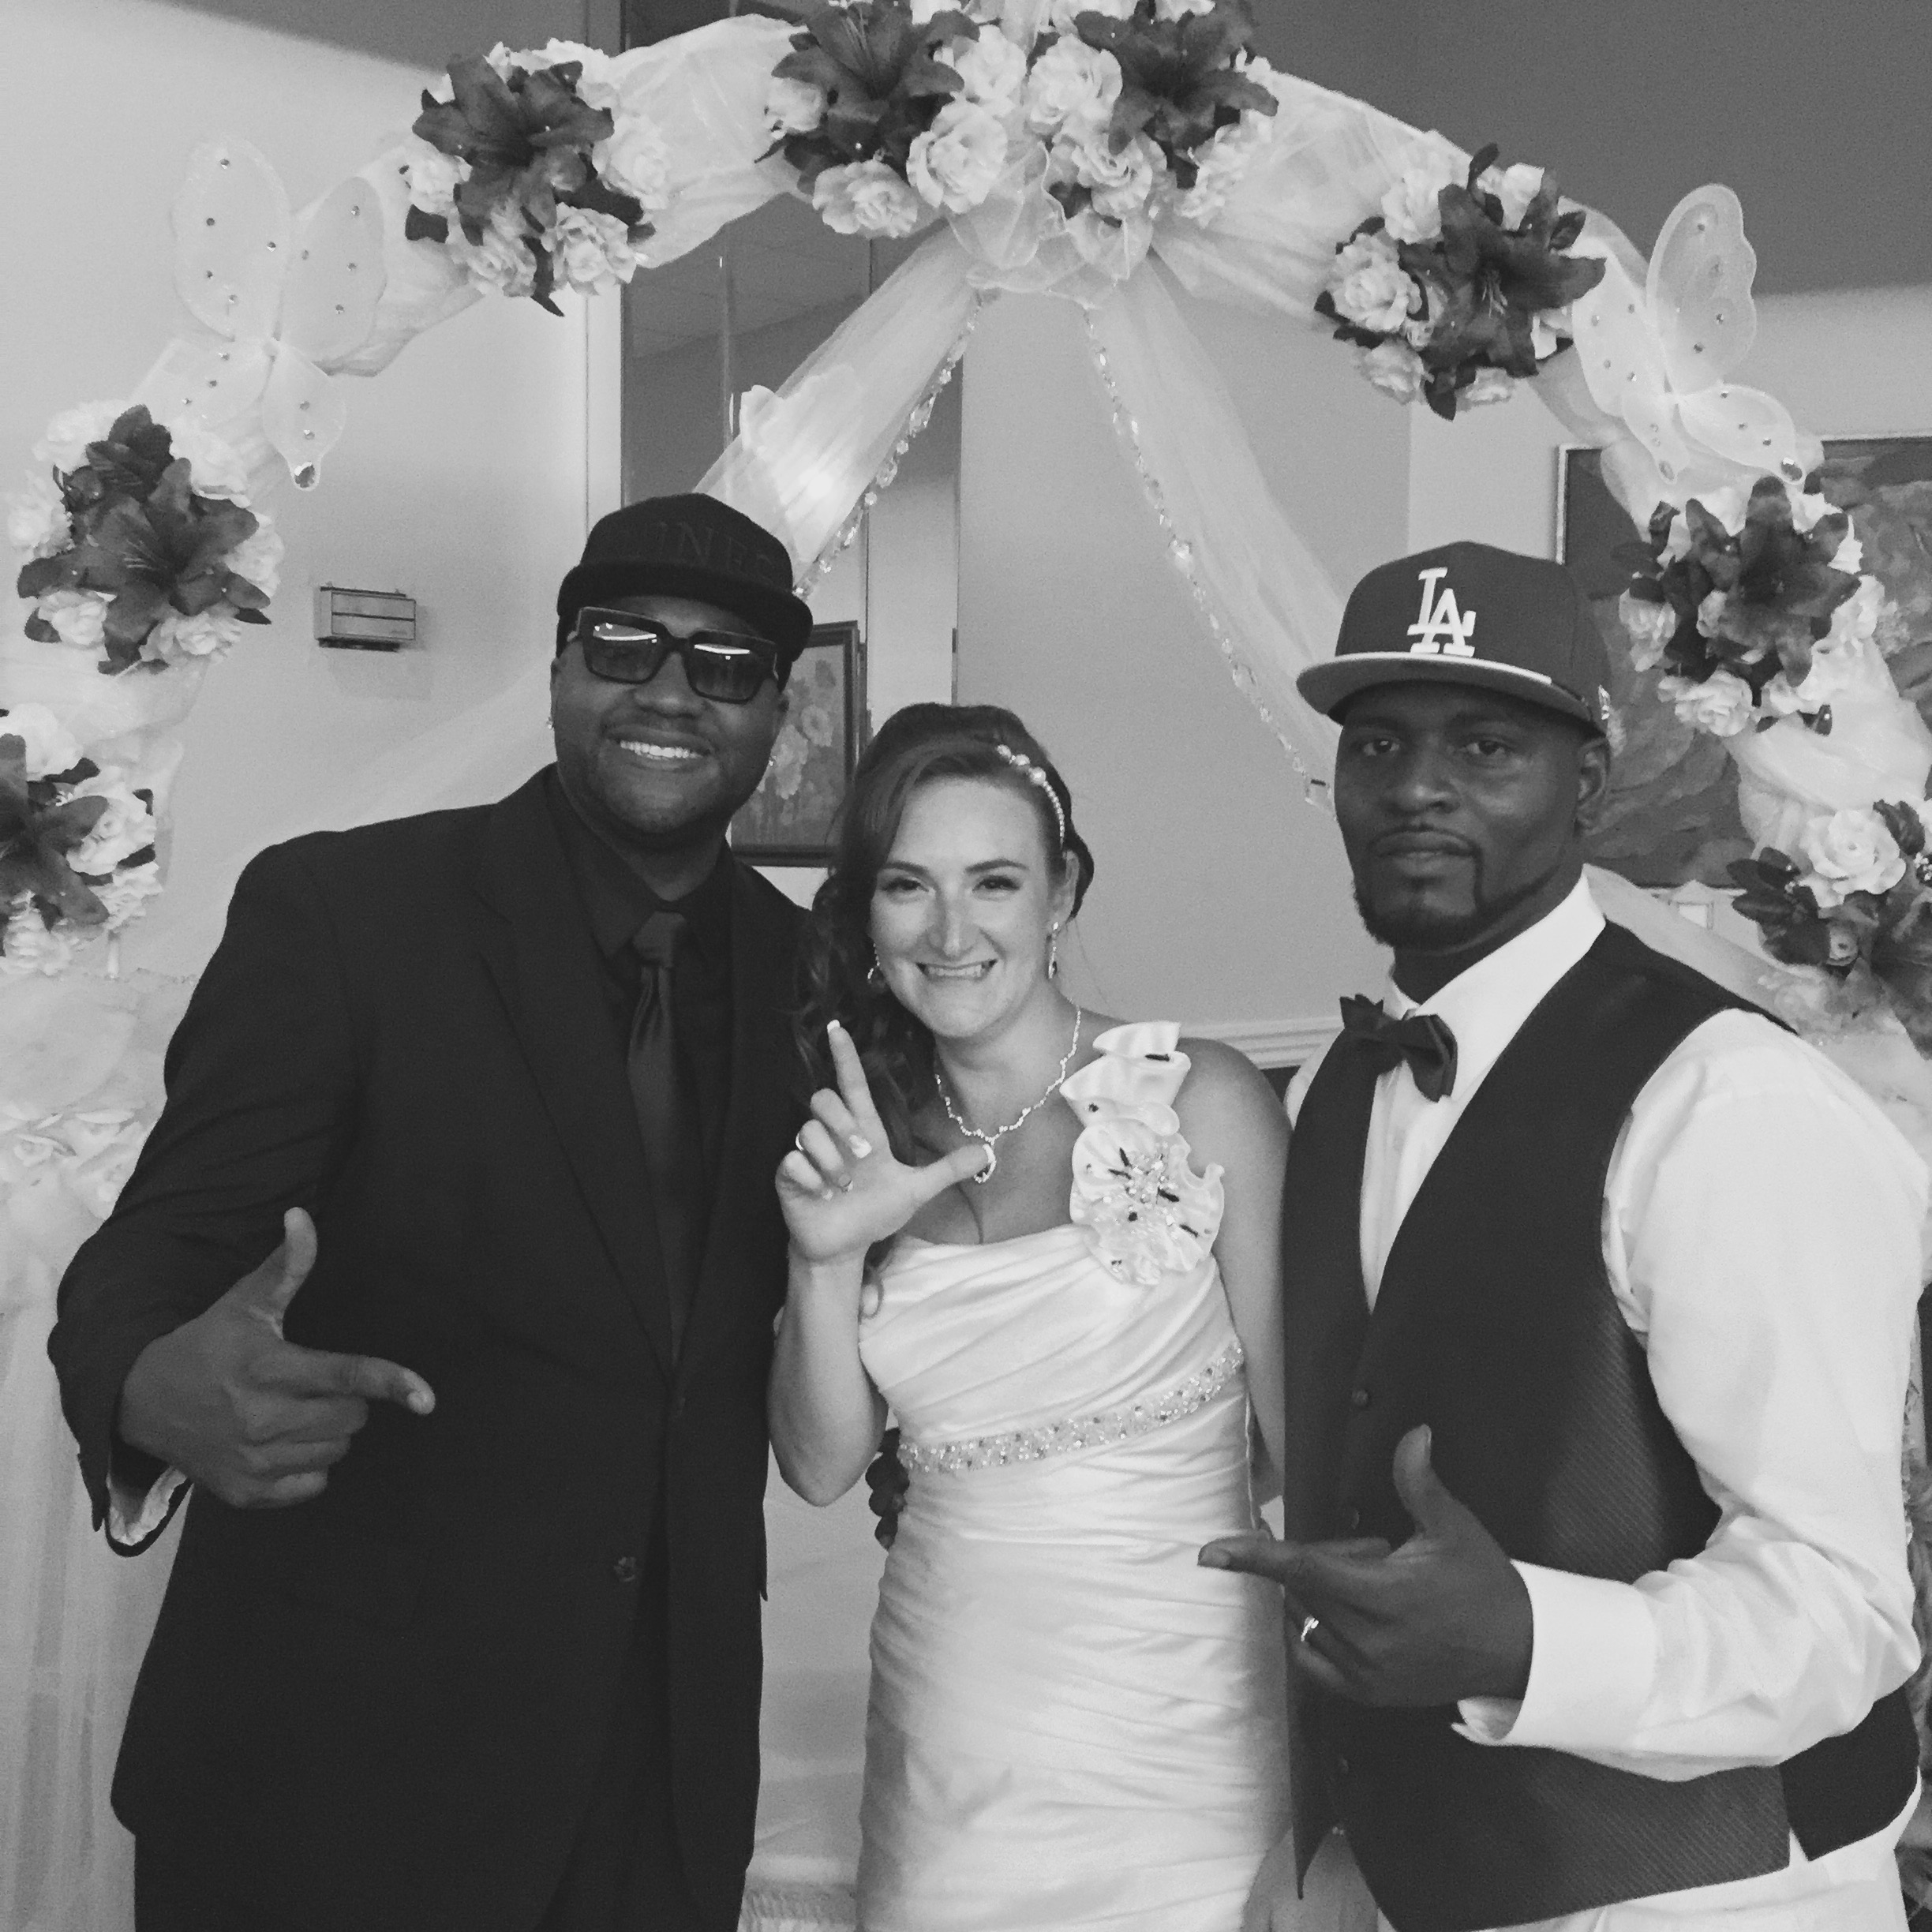 DJ D JONES CHICAGO BEST WEDDING BRIDE GROOM 014.jpg